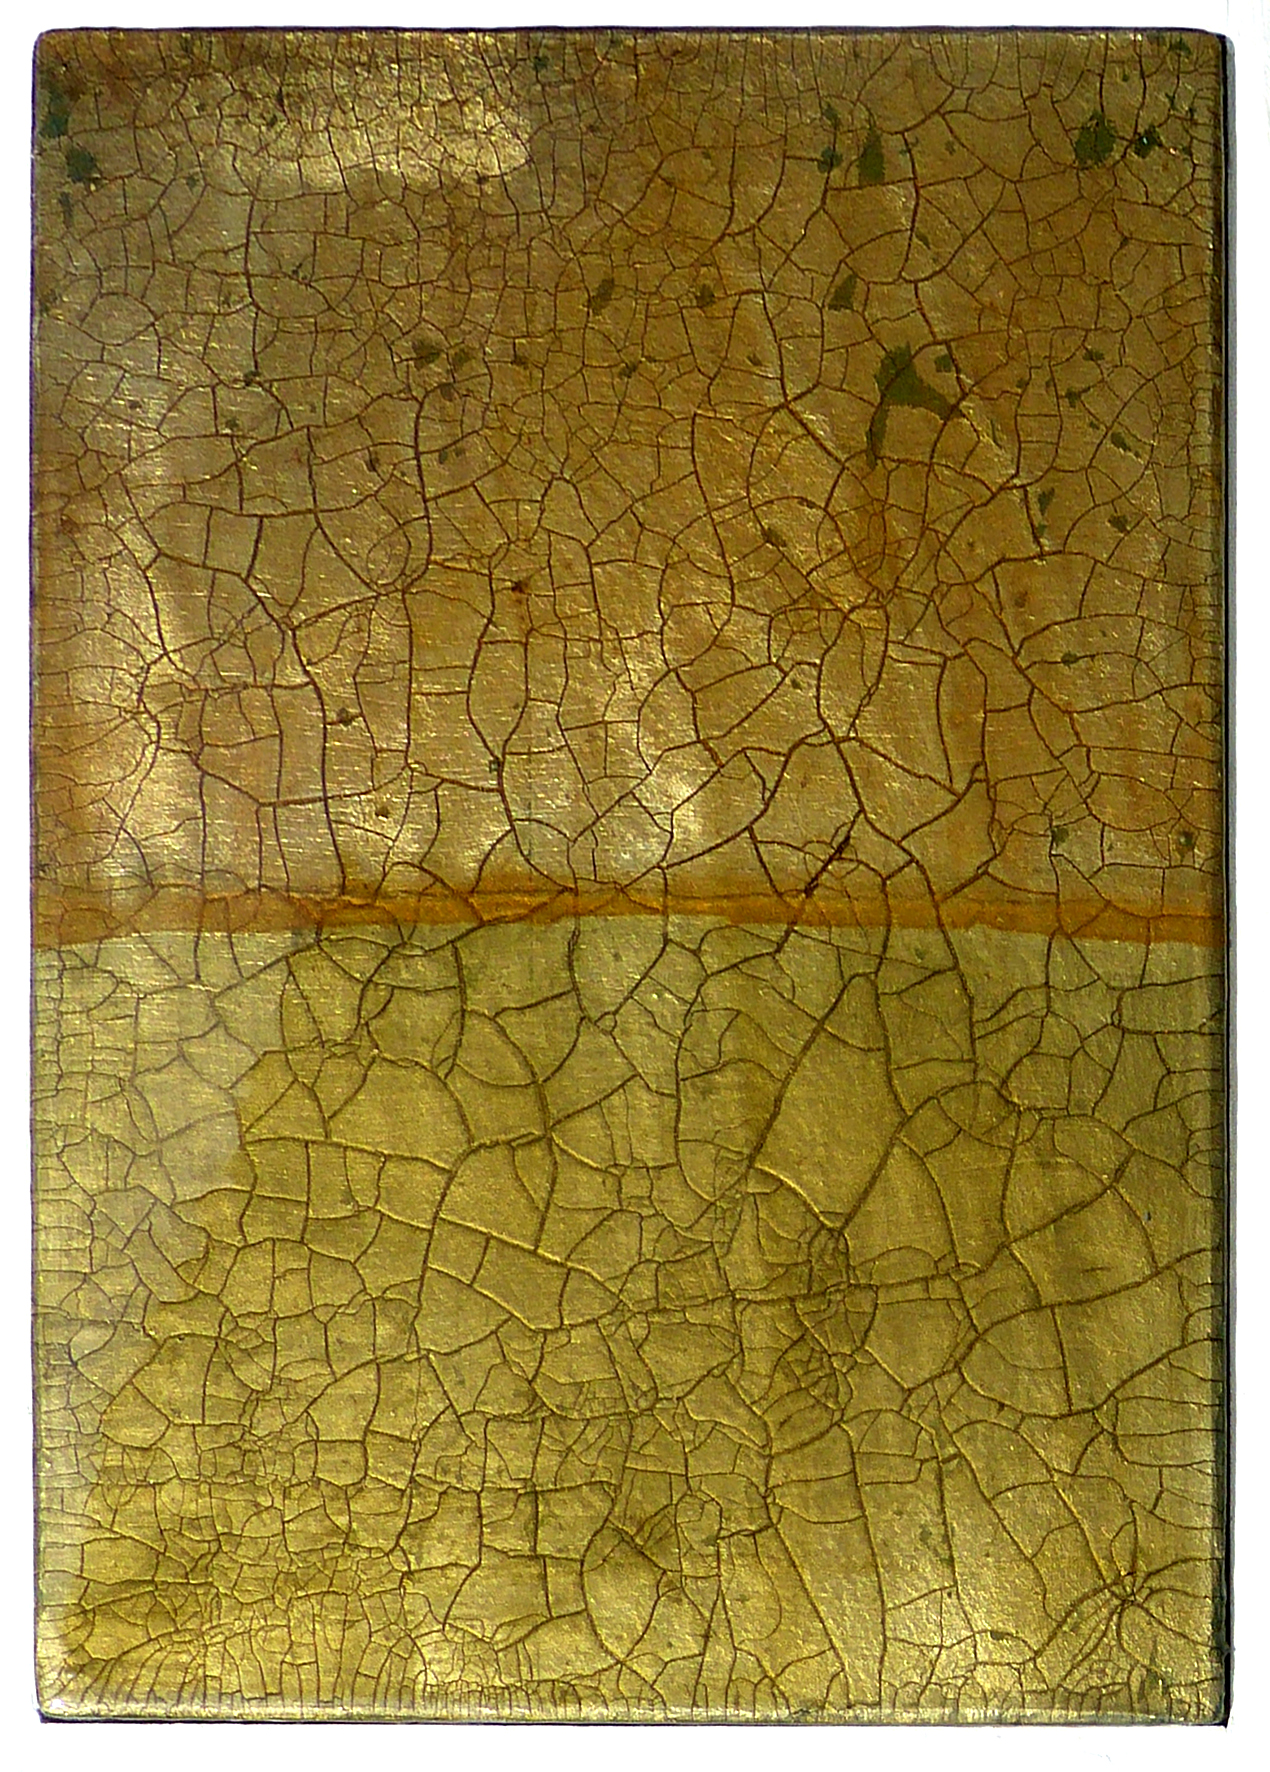 FRORE No.6 | 26x36cm gilded silver leaf and mixed media on board with high gloss epoxy resin | £490.00